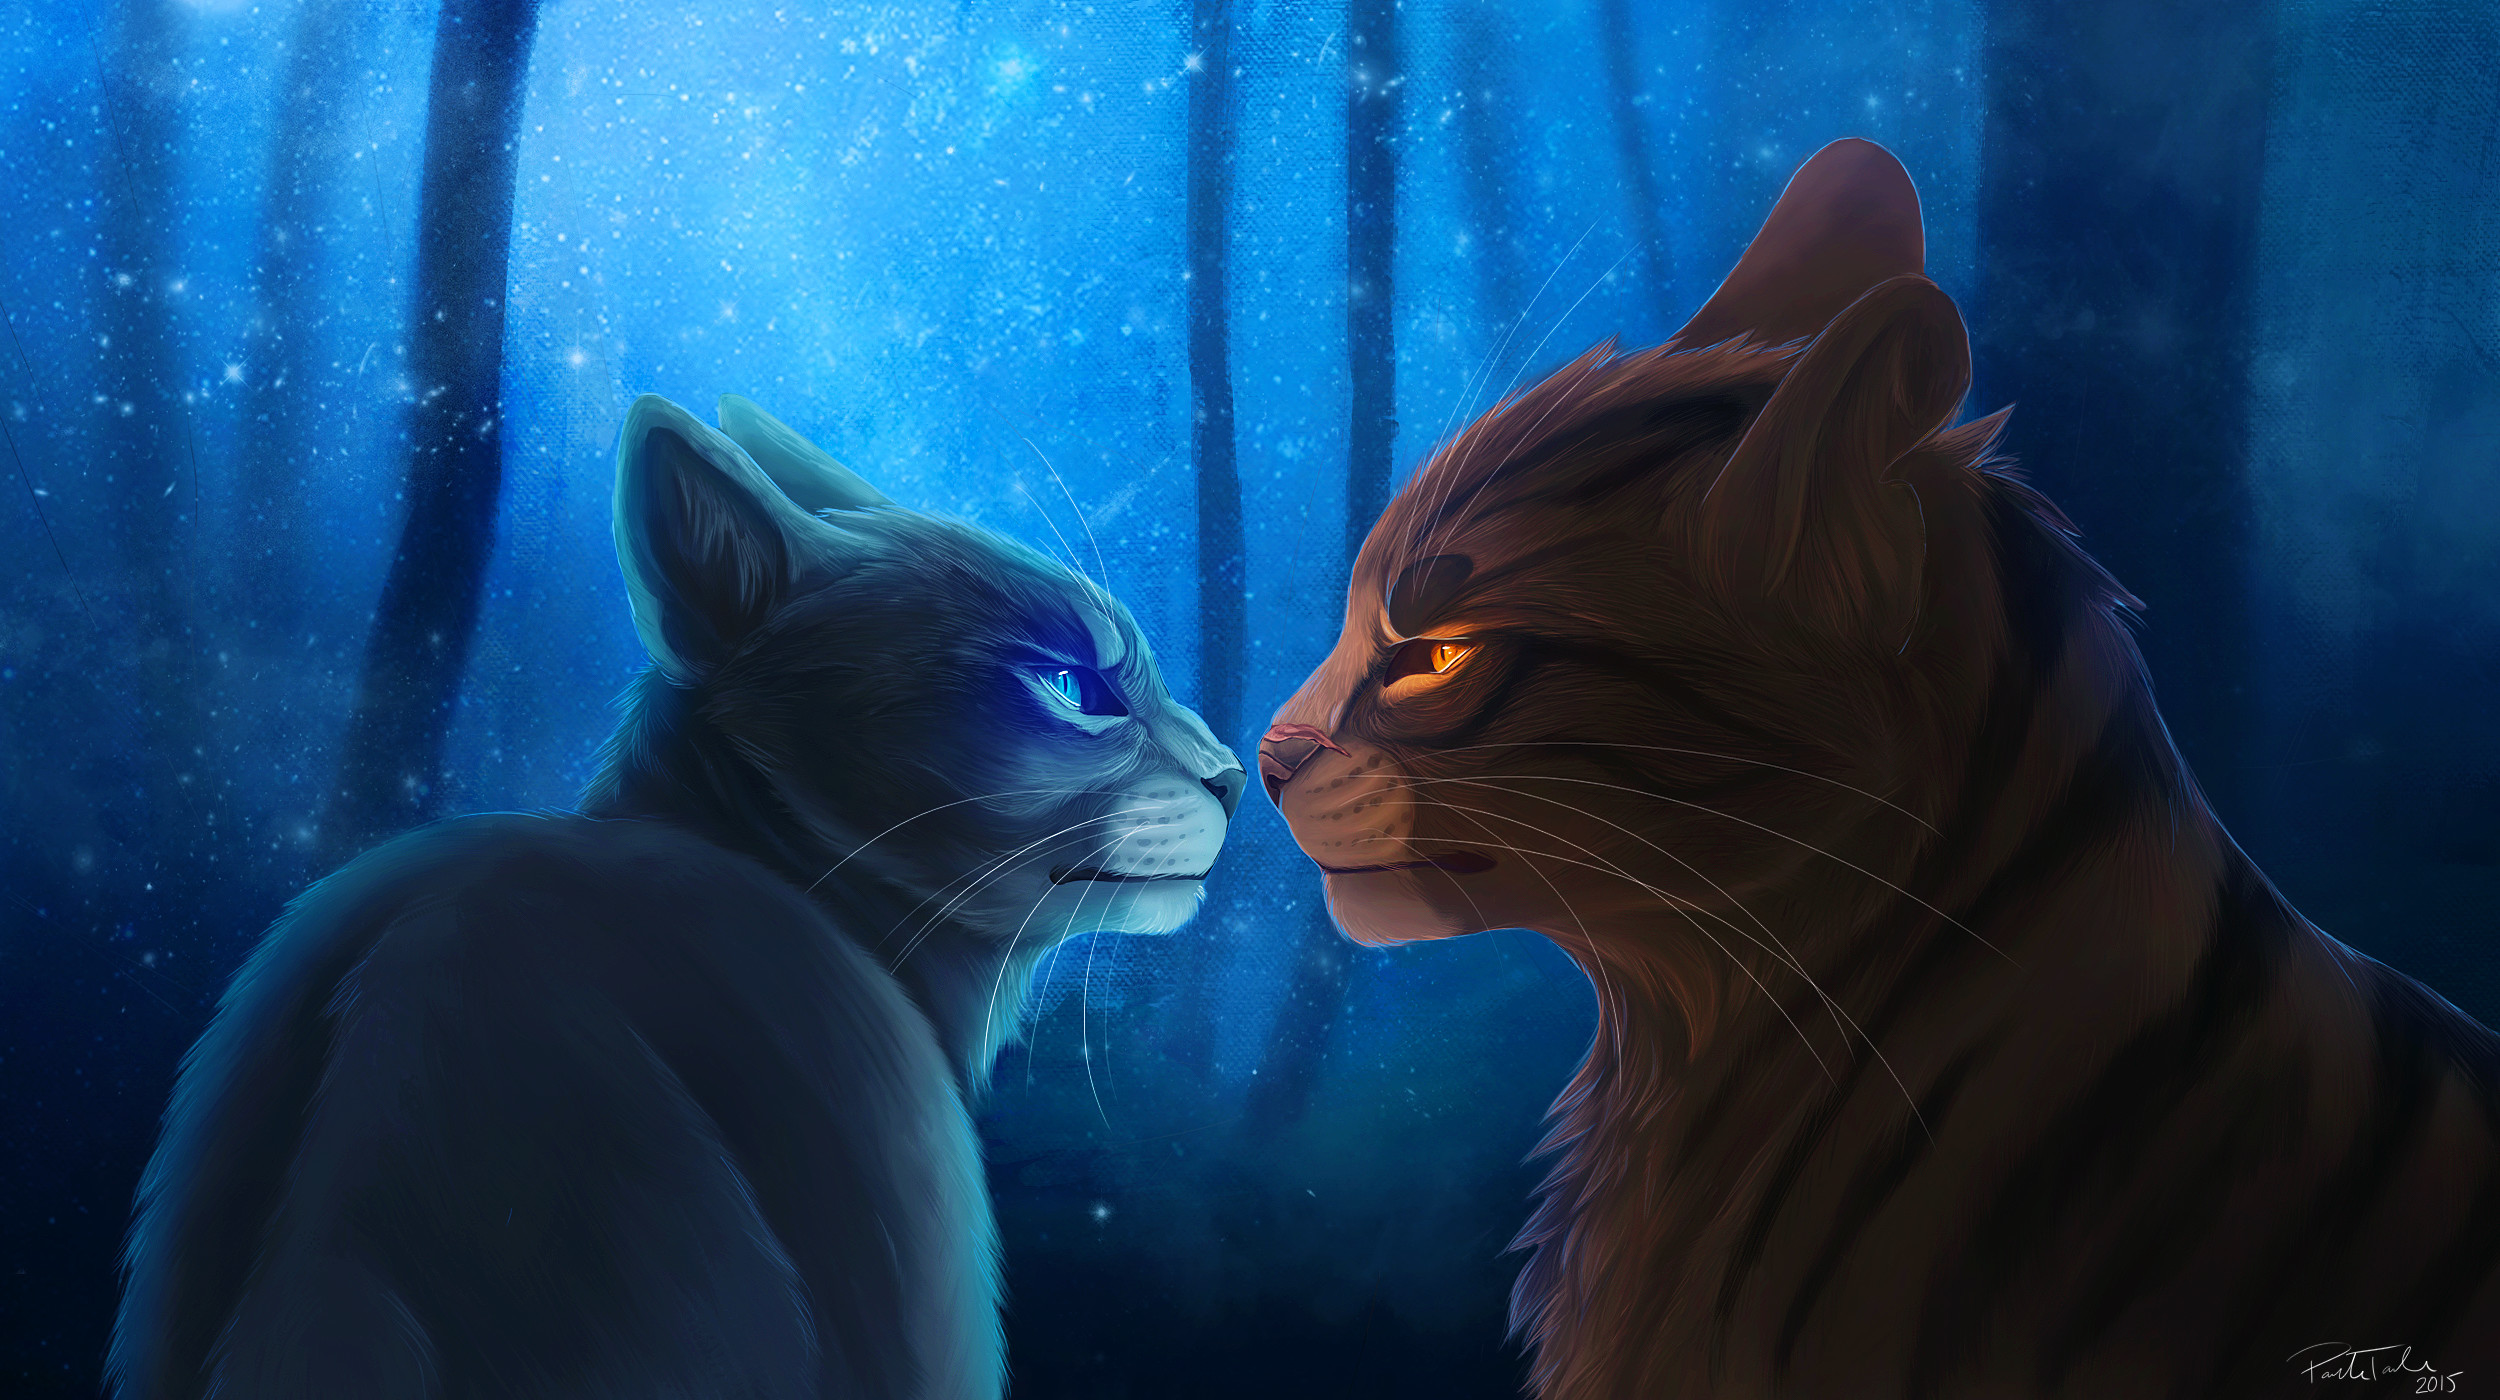 2455x1650 Warriors By XXThatEpicDrawerXx What If Tigerstar Killed Scourge